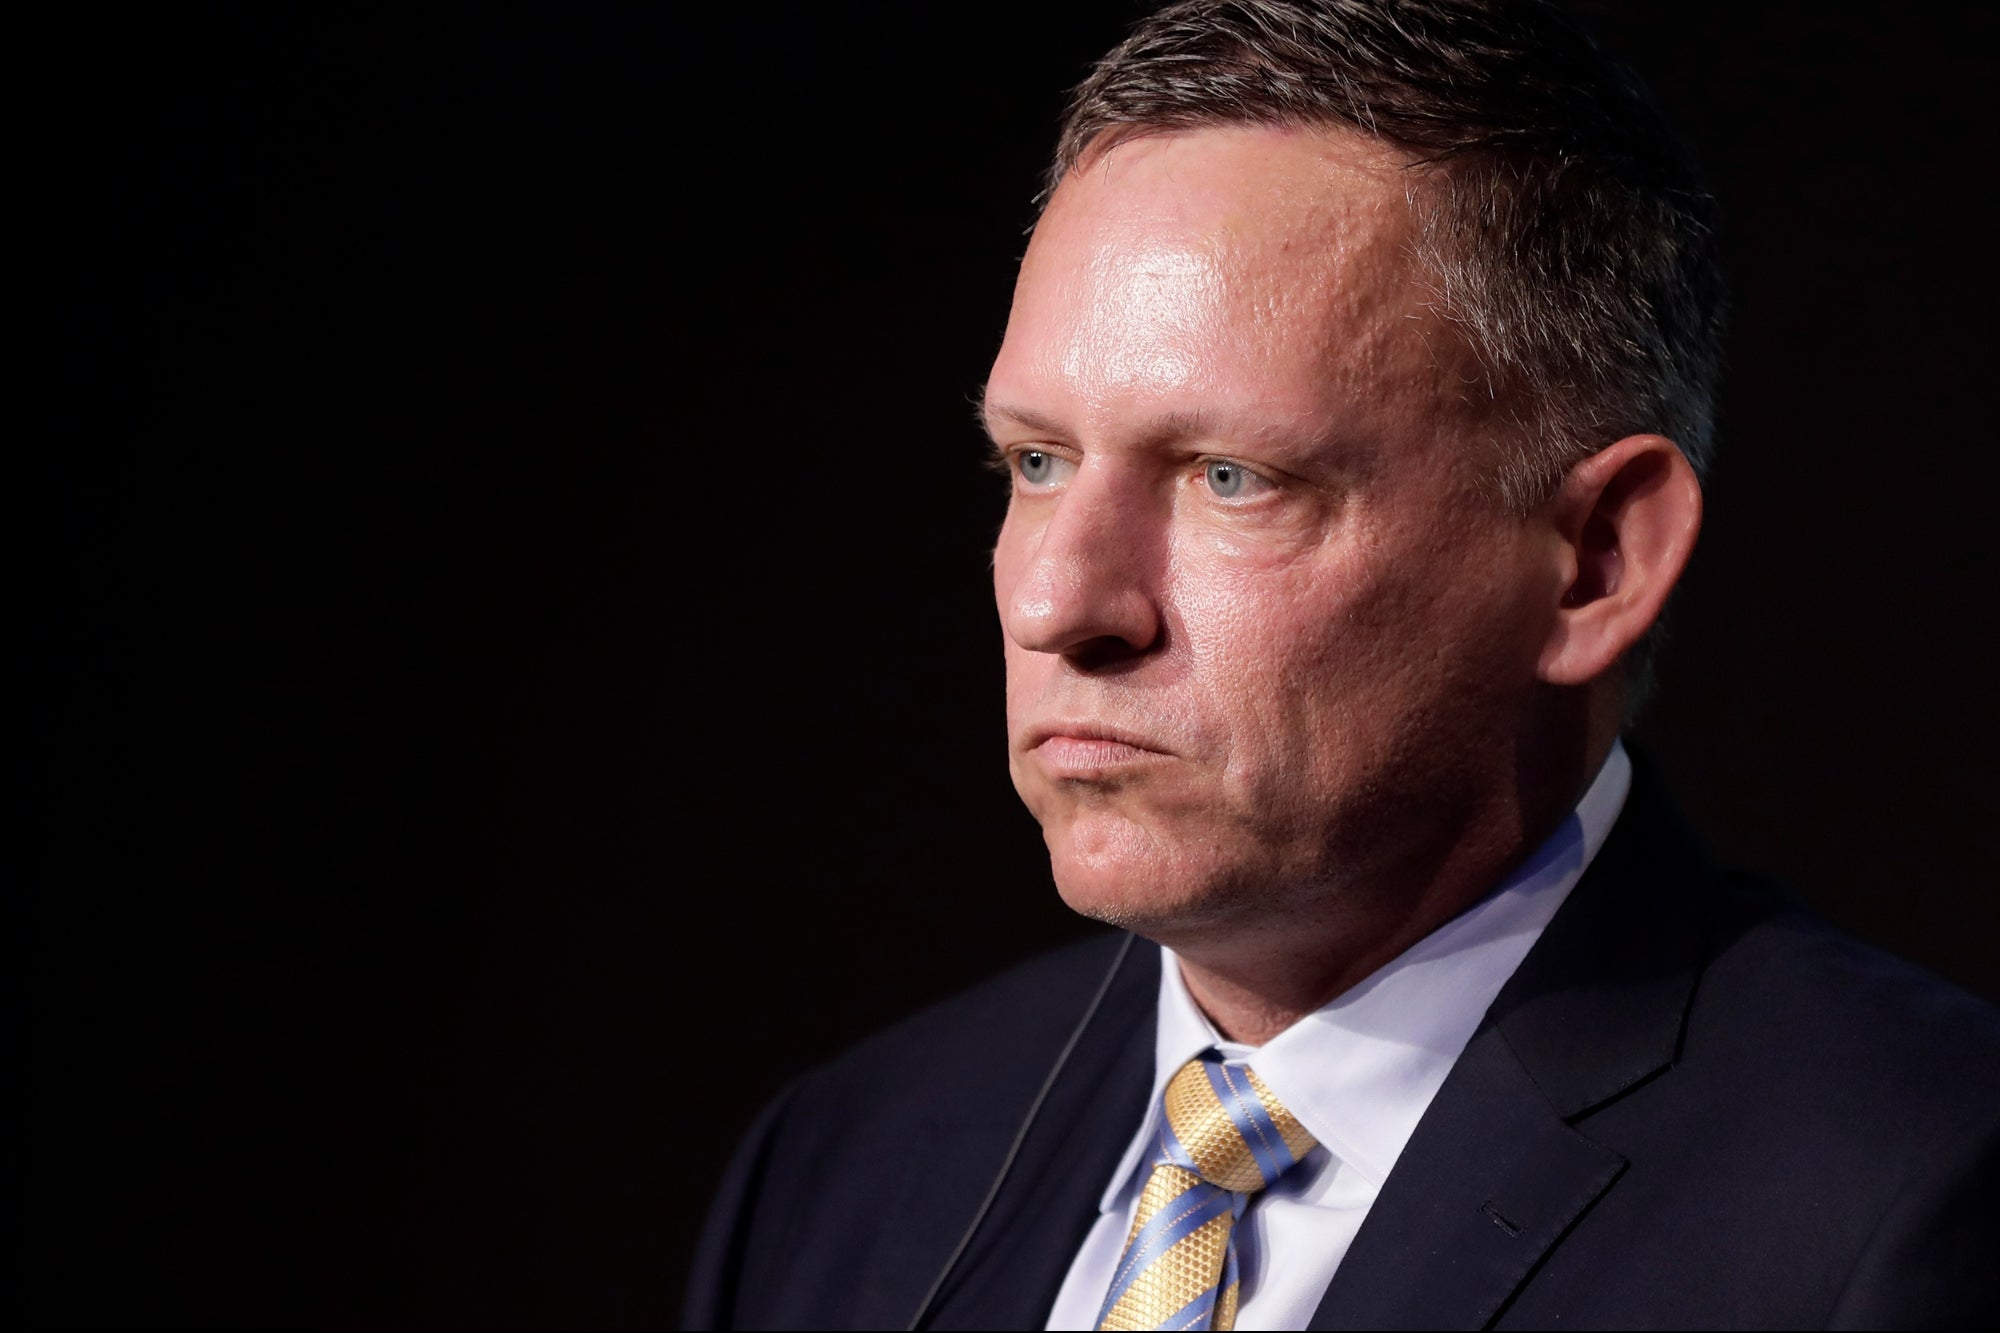 China Might Use Bitcoin as 'Monetary Weapon' Towards U.S., Peter Thiel Warns